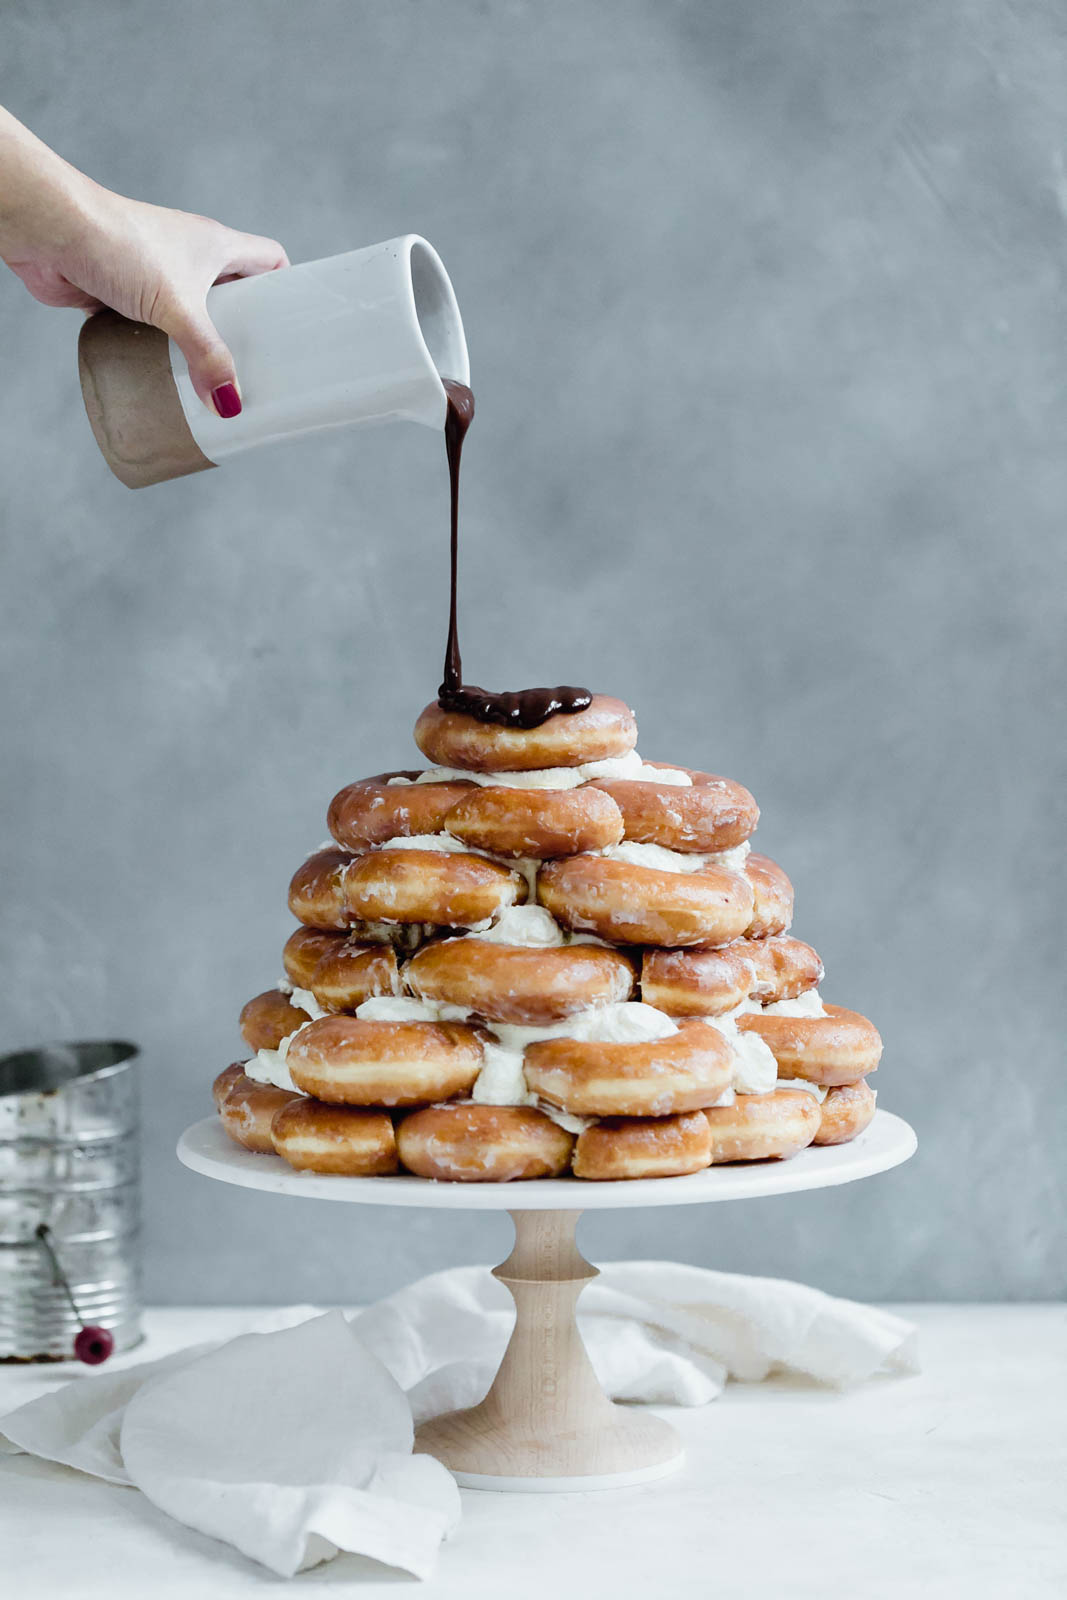 Krispy Kreme Doughnut Cake: a cake made entirely of Krispy Kreme doughnuts and drizzled with chocolate fudge sauce. I've died and gone to heaven.